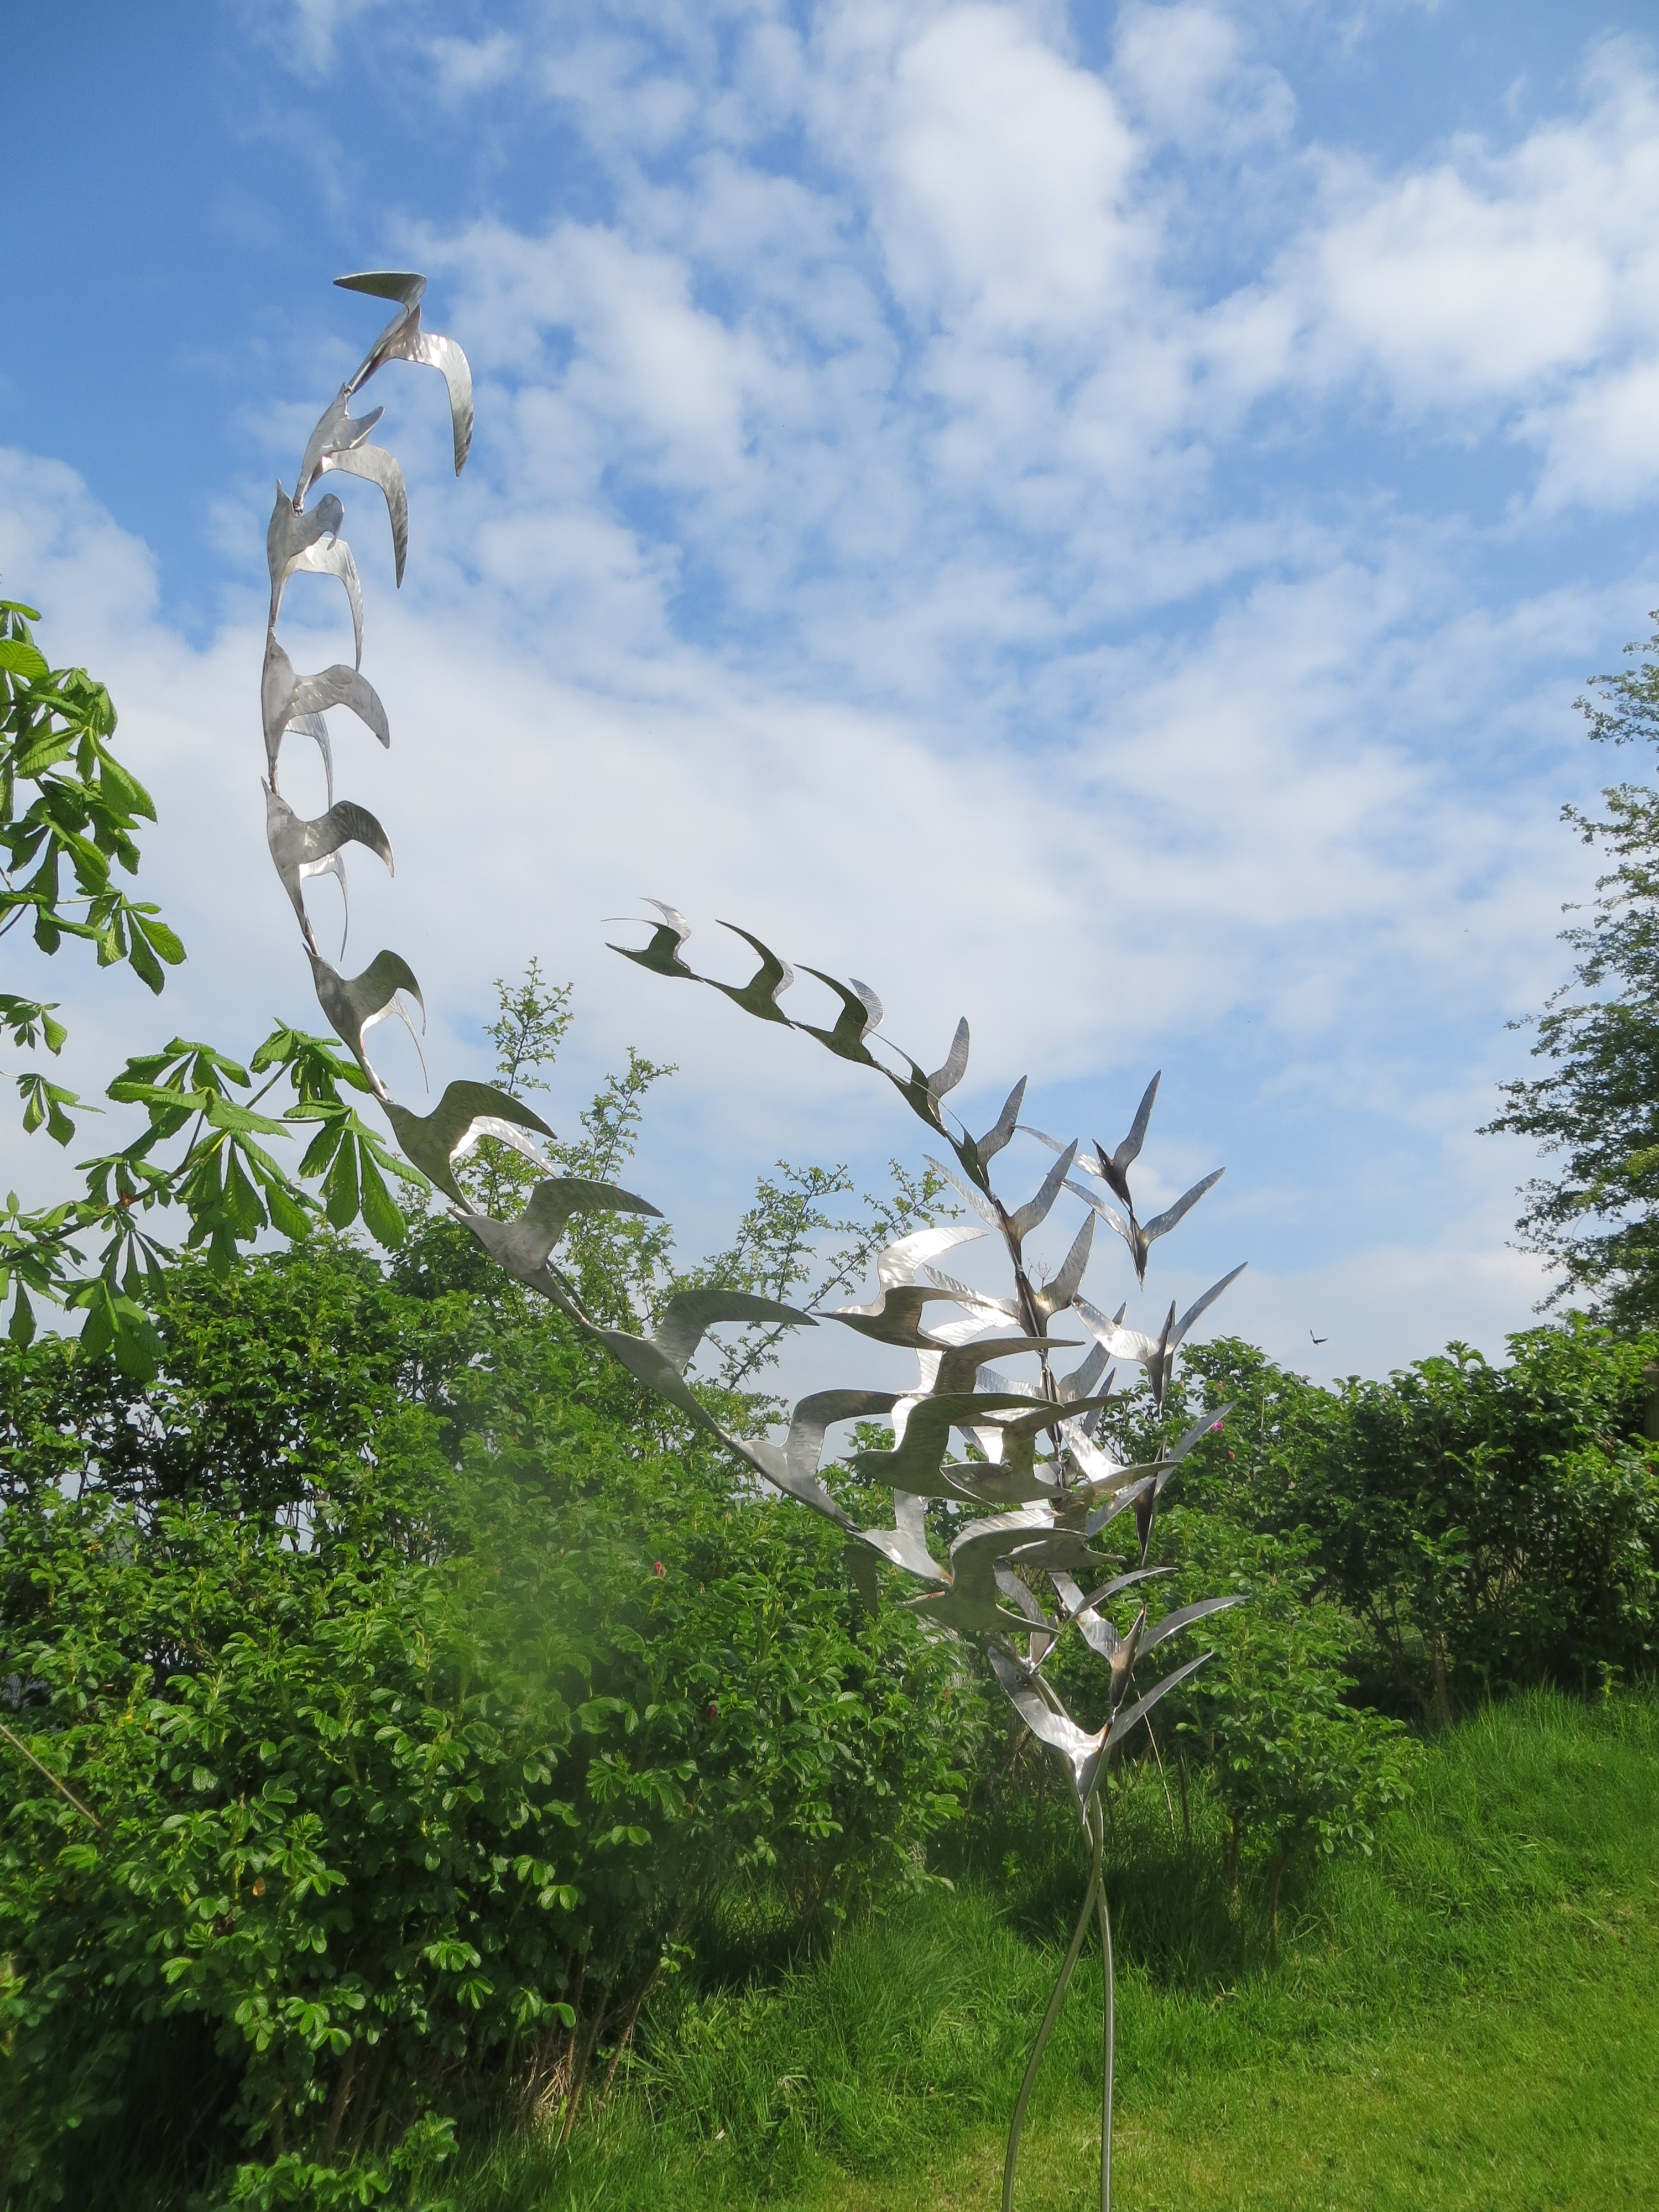 Stainless Steel Garden Sculpture of Terns